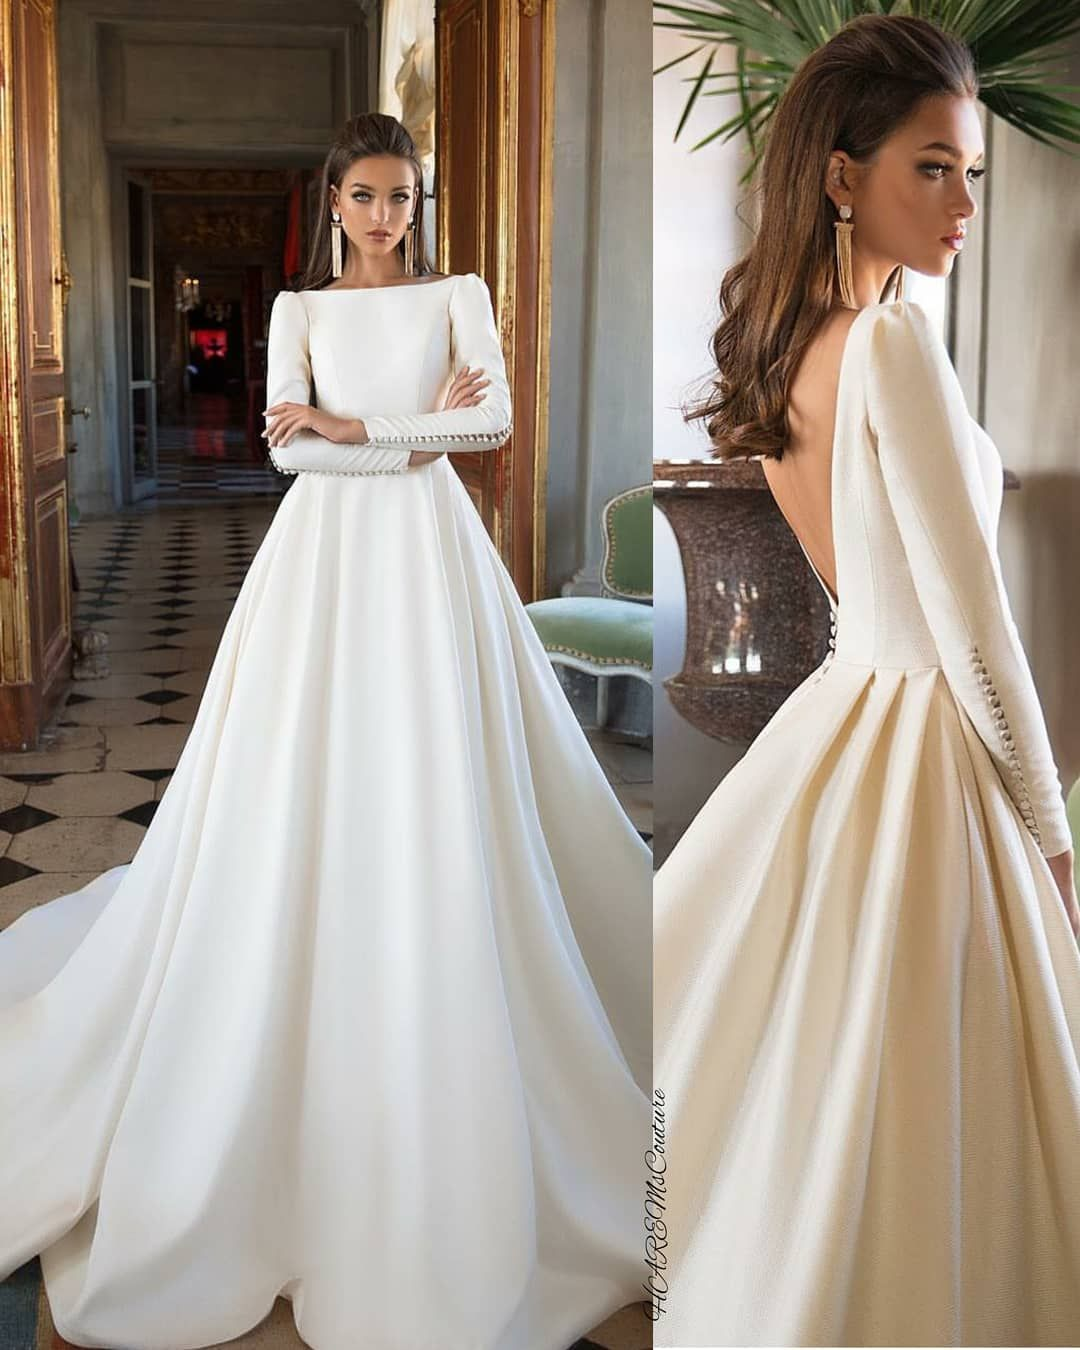 Which One 1 10 Haremscouture Millanova In 2020 Conservative Wedding Dress Ball Gowns Wedding Wedding Dresses